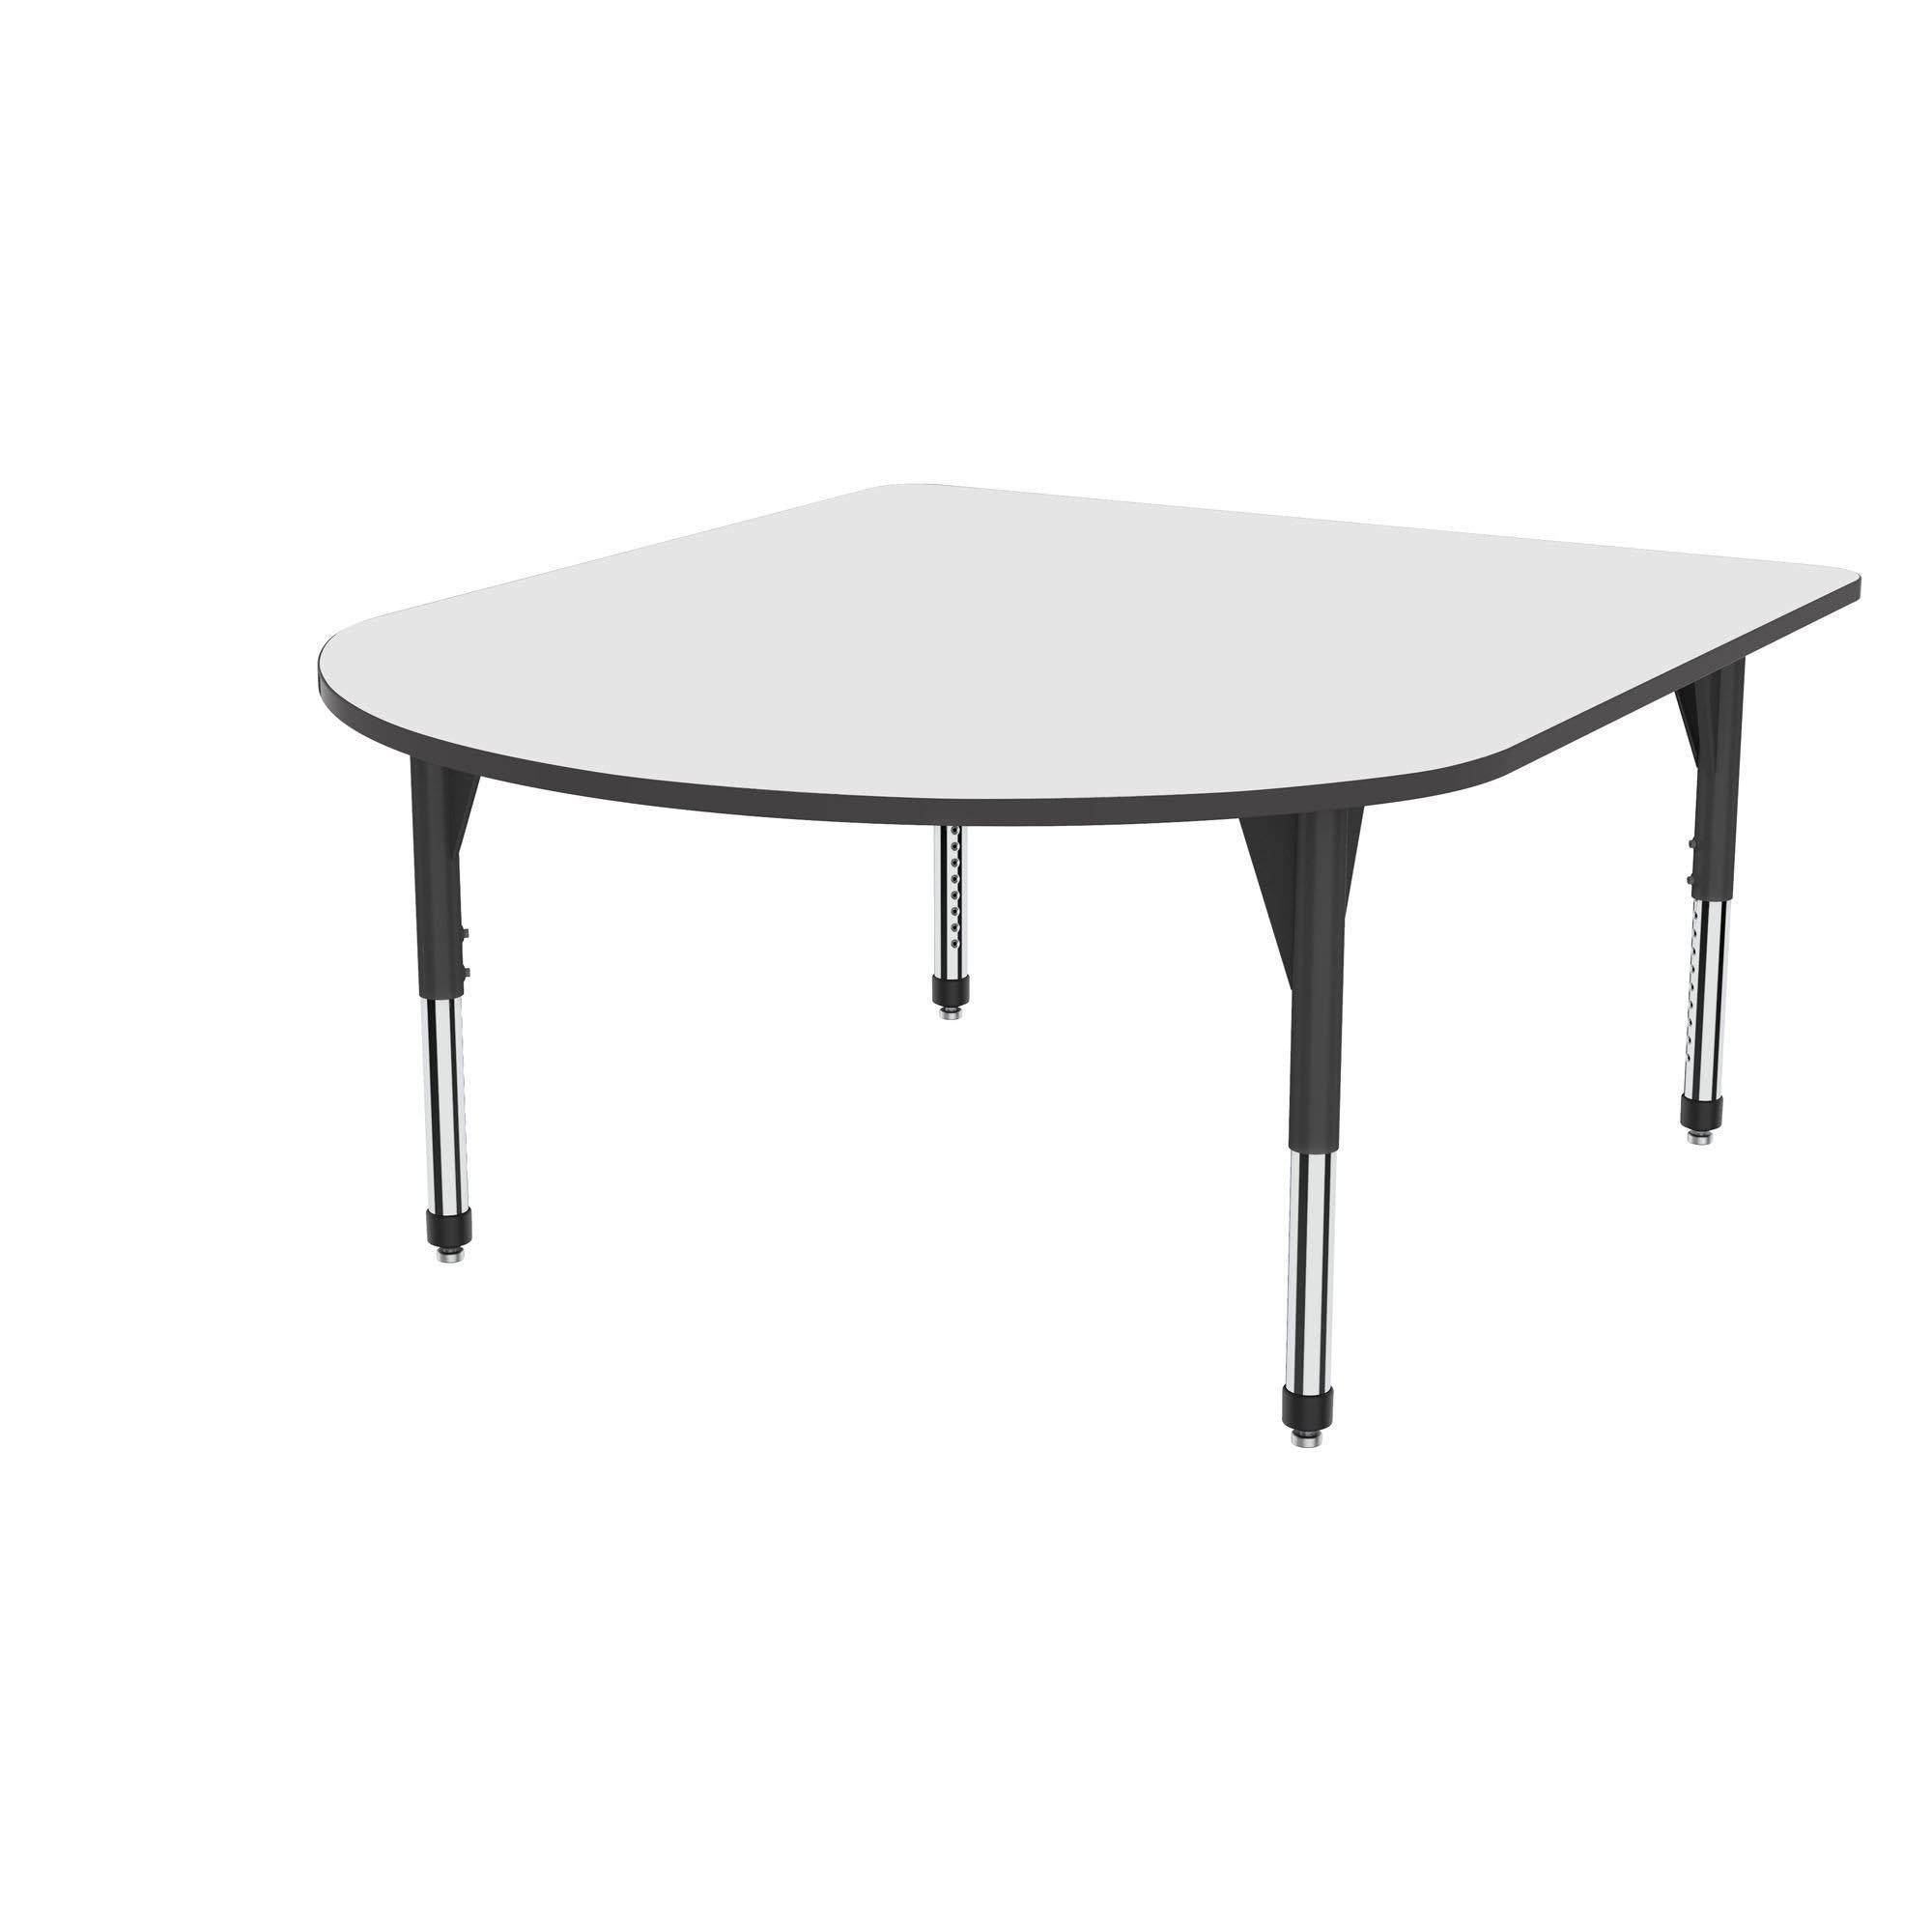 "Premier Series Multimedia Tables with White Dry-Erase Top, 60"" x 72""-Tables-Sitting (21"" - 31"")-White Dry Erase/Black-Black"